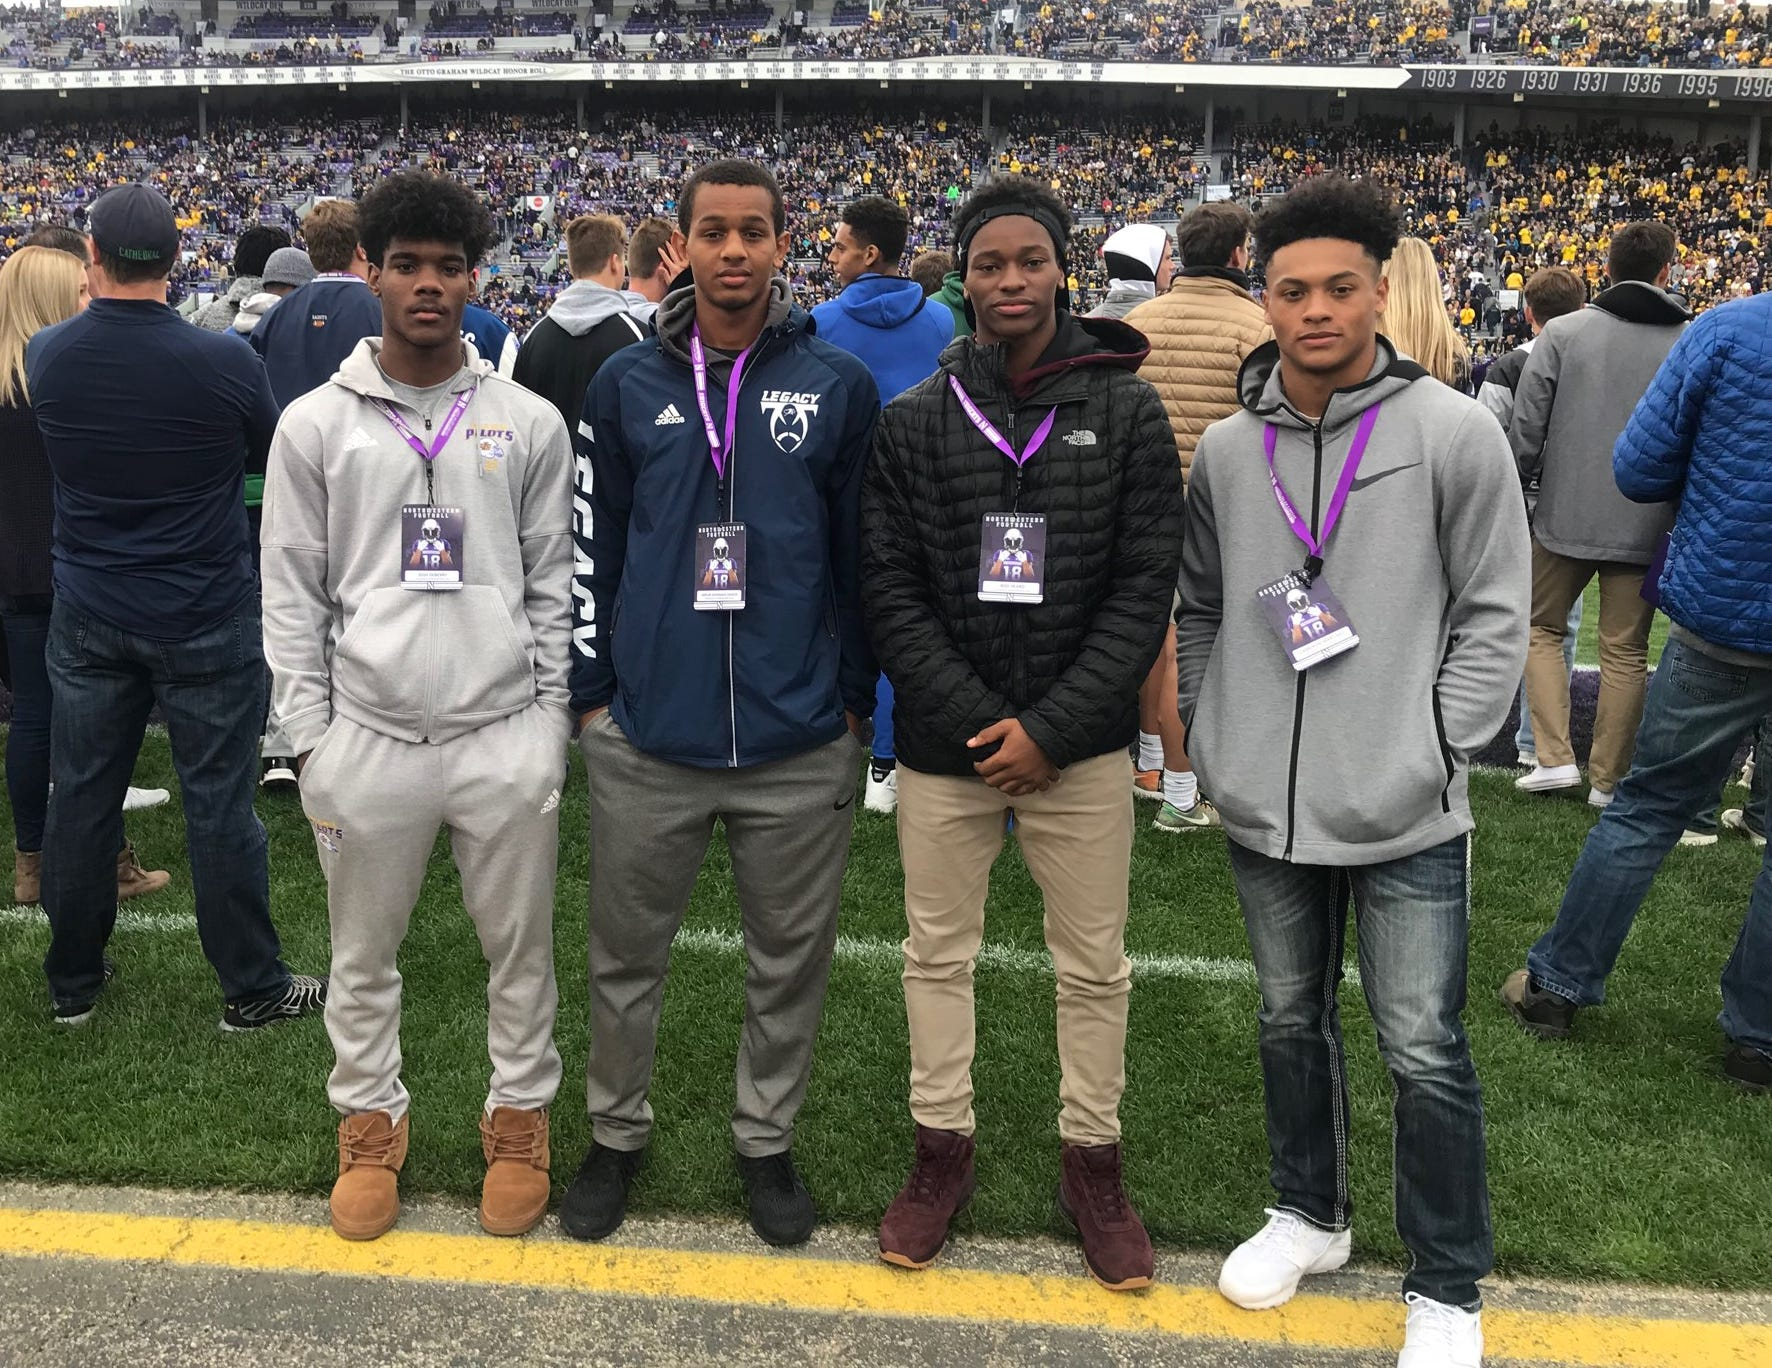 Muskegon's Cameron Martinez, right, is joined at the Michigan-Northwestern game by (from left) Warren De La Salle's Josh DeBerry, Walled Lake Western's Abdur-Rahmaan Yaseen and Farmington Hills Harrison's Rod Heard.